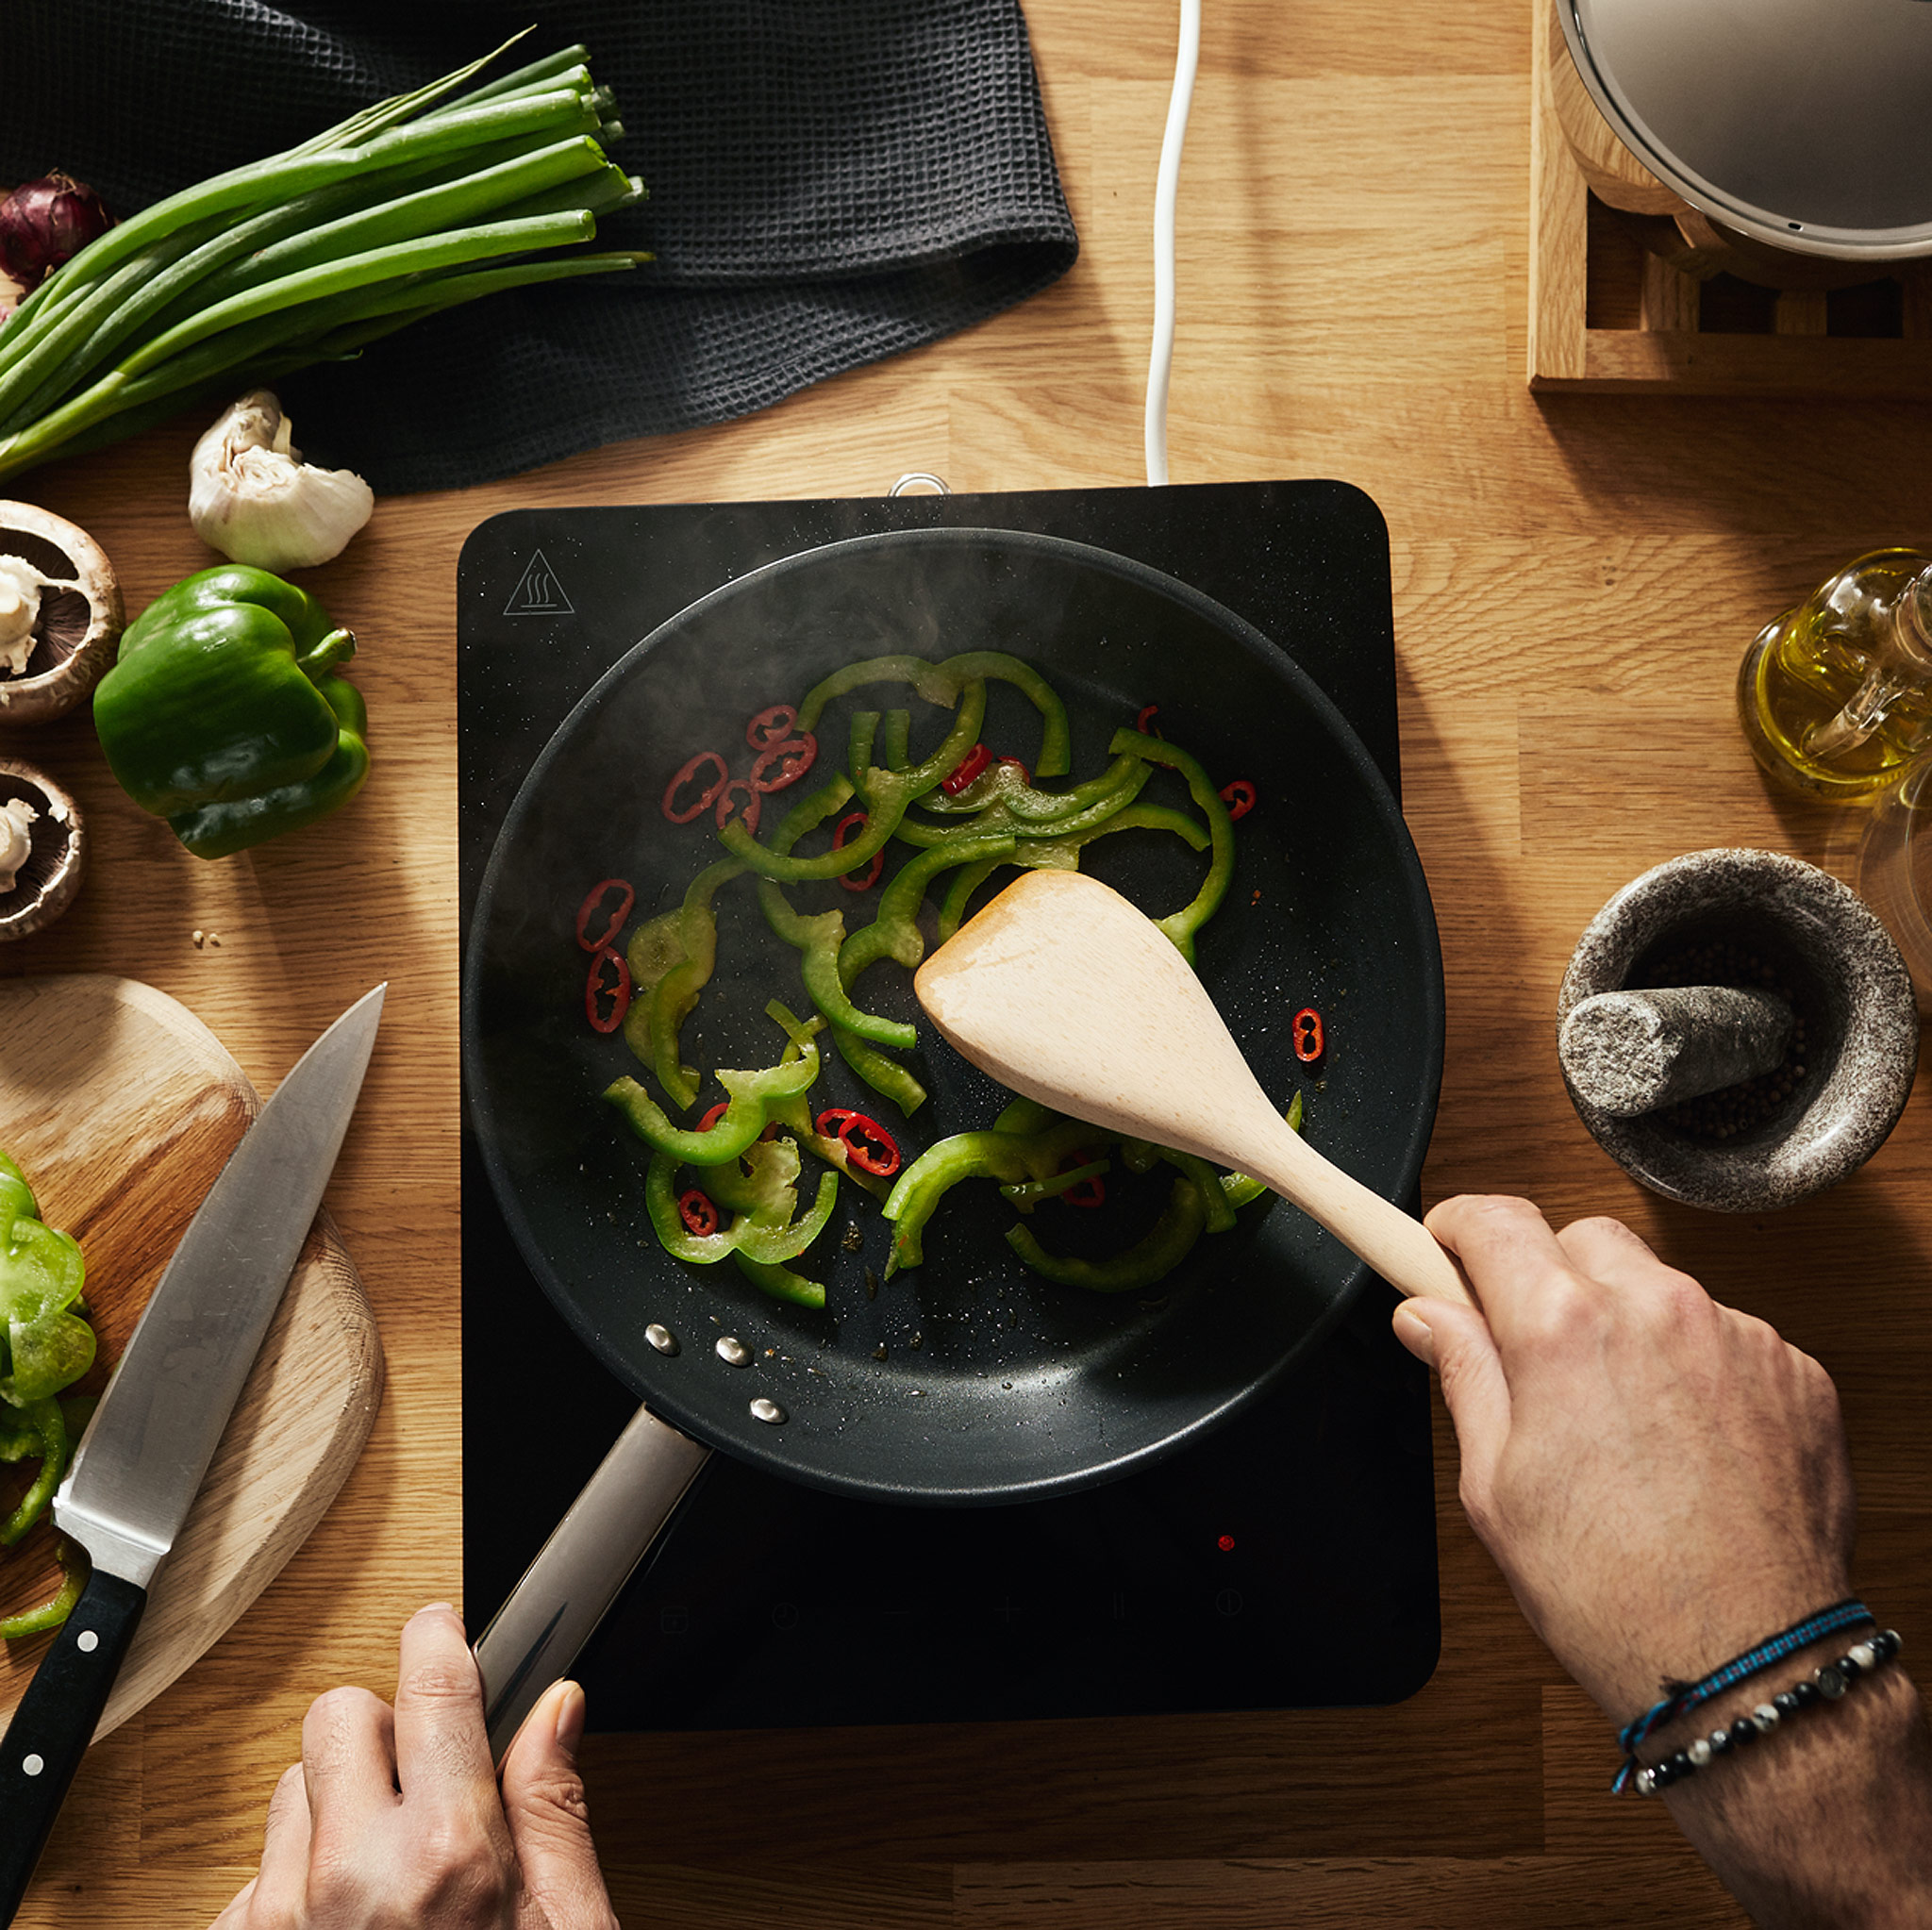 A man wearing bracelets preparing a vegetarian meal containing red and green peppers on a portable induction cooktop.